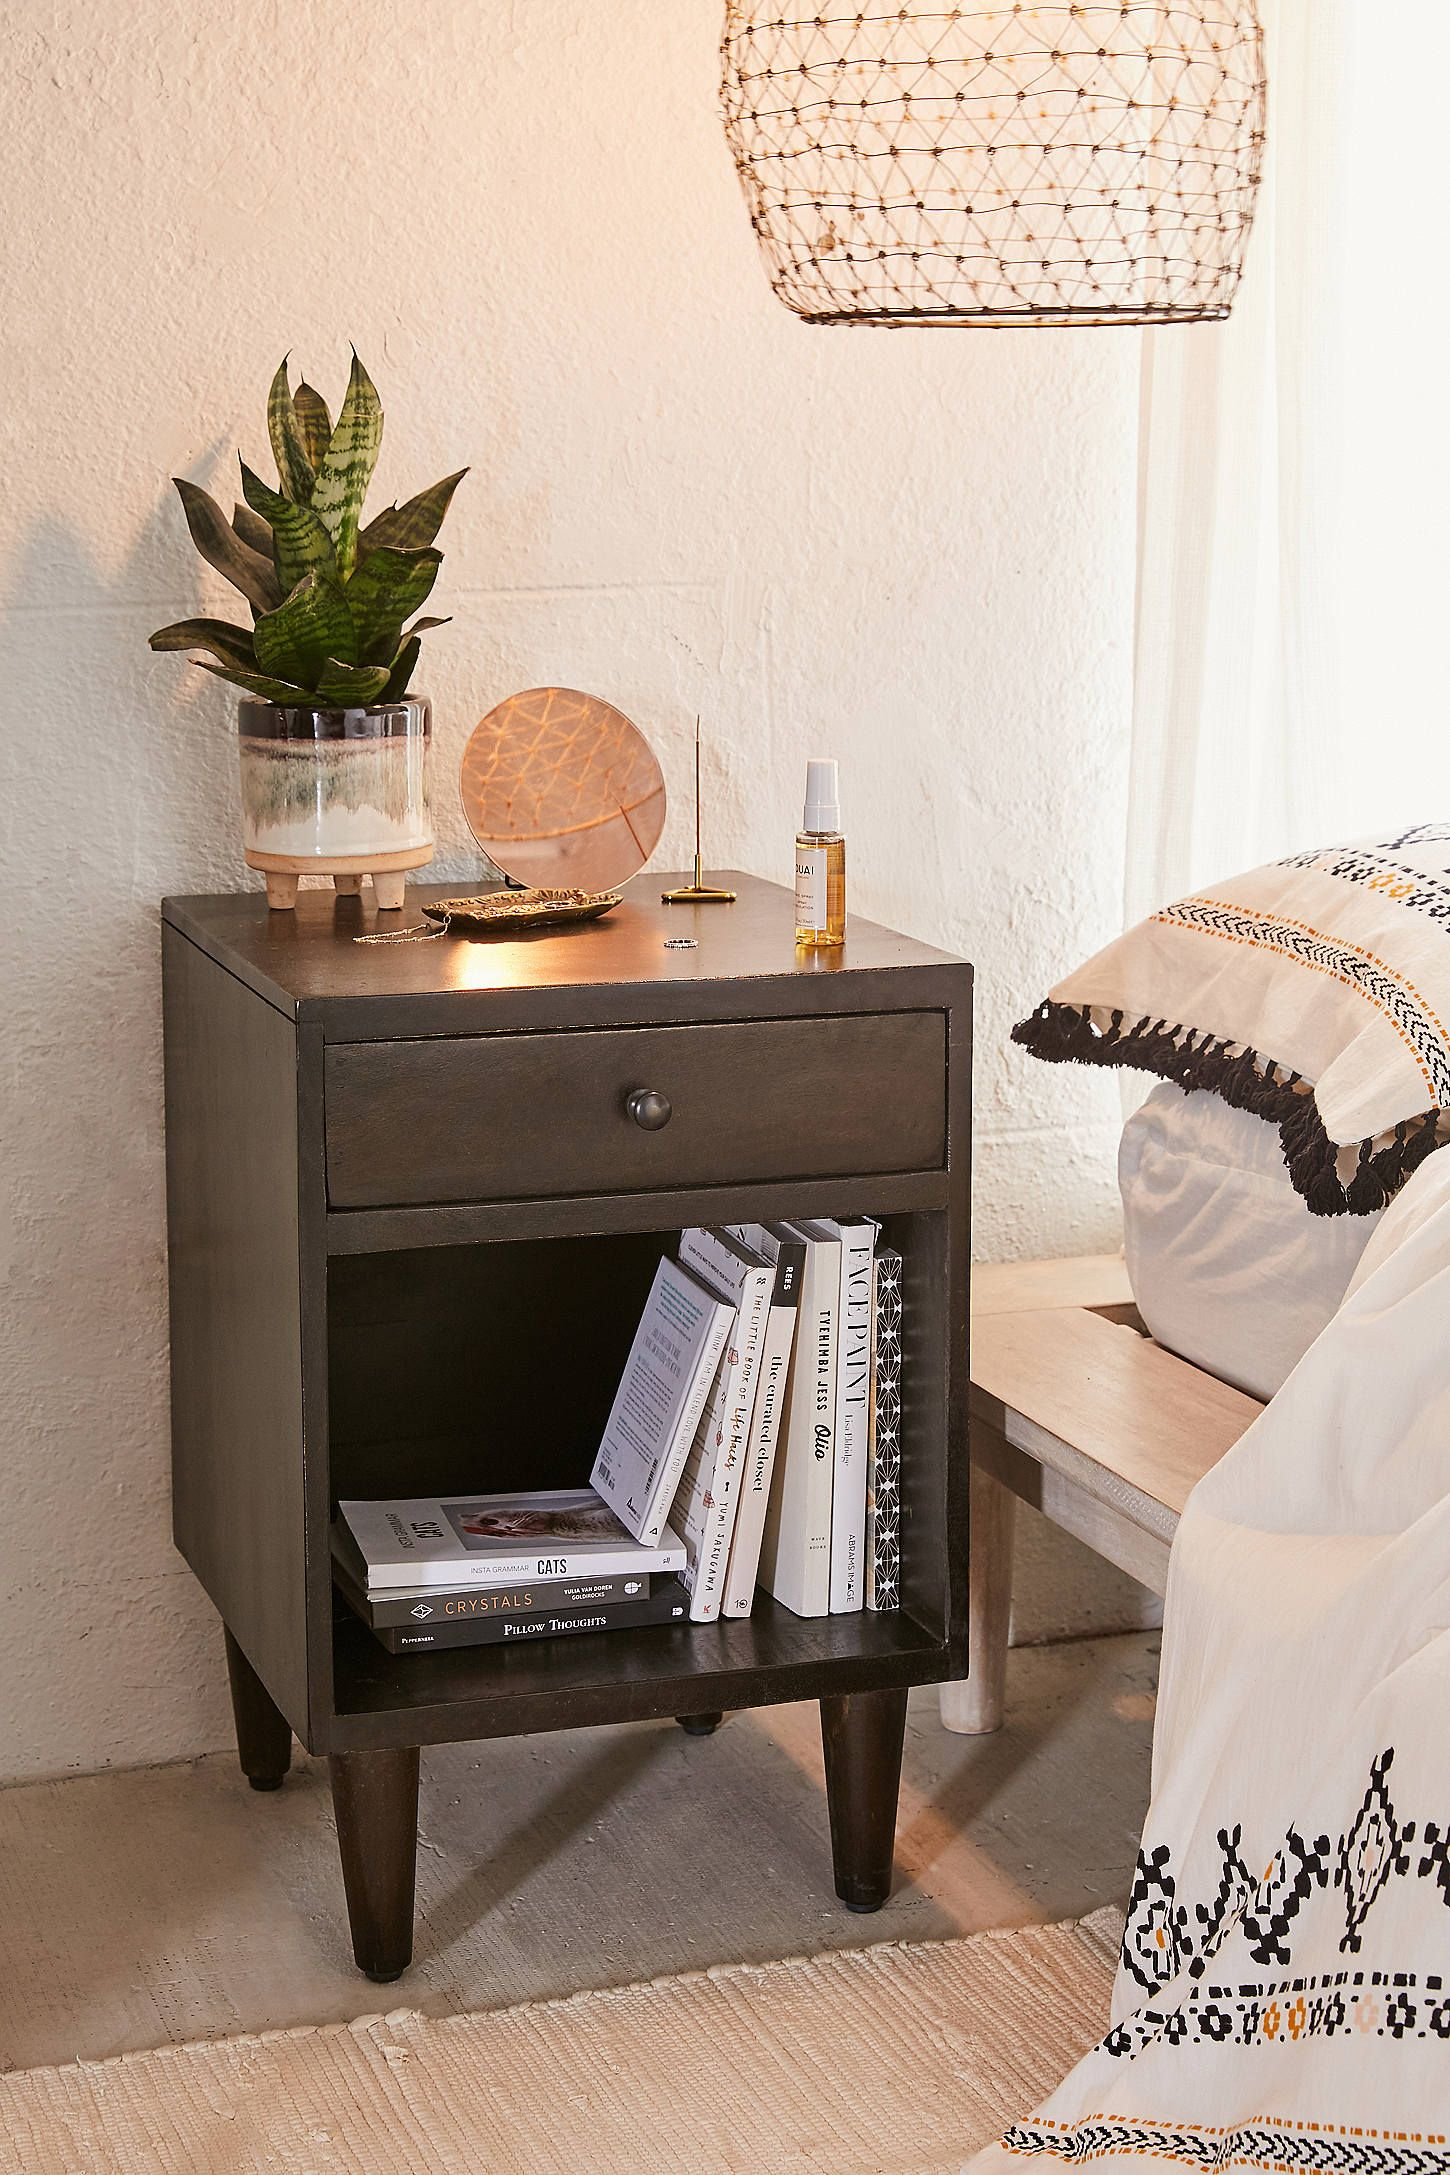 Amelia Nightstand Urban Outfitters Urban Outfitters Room